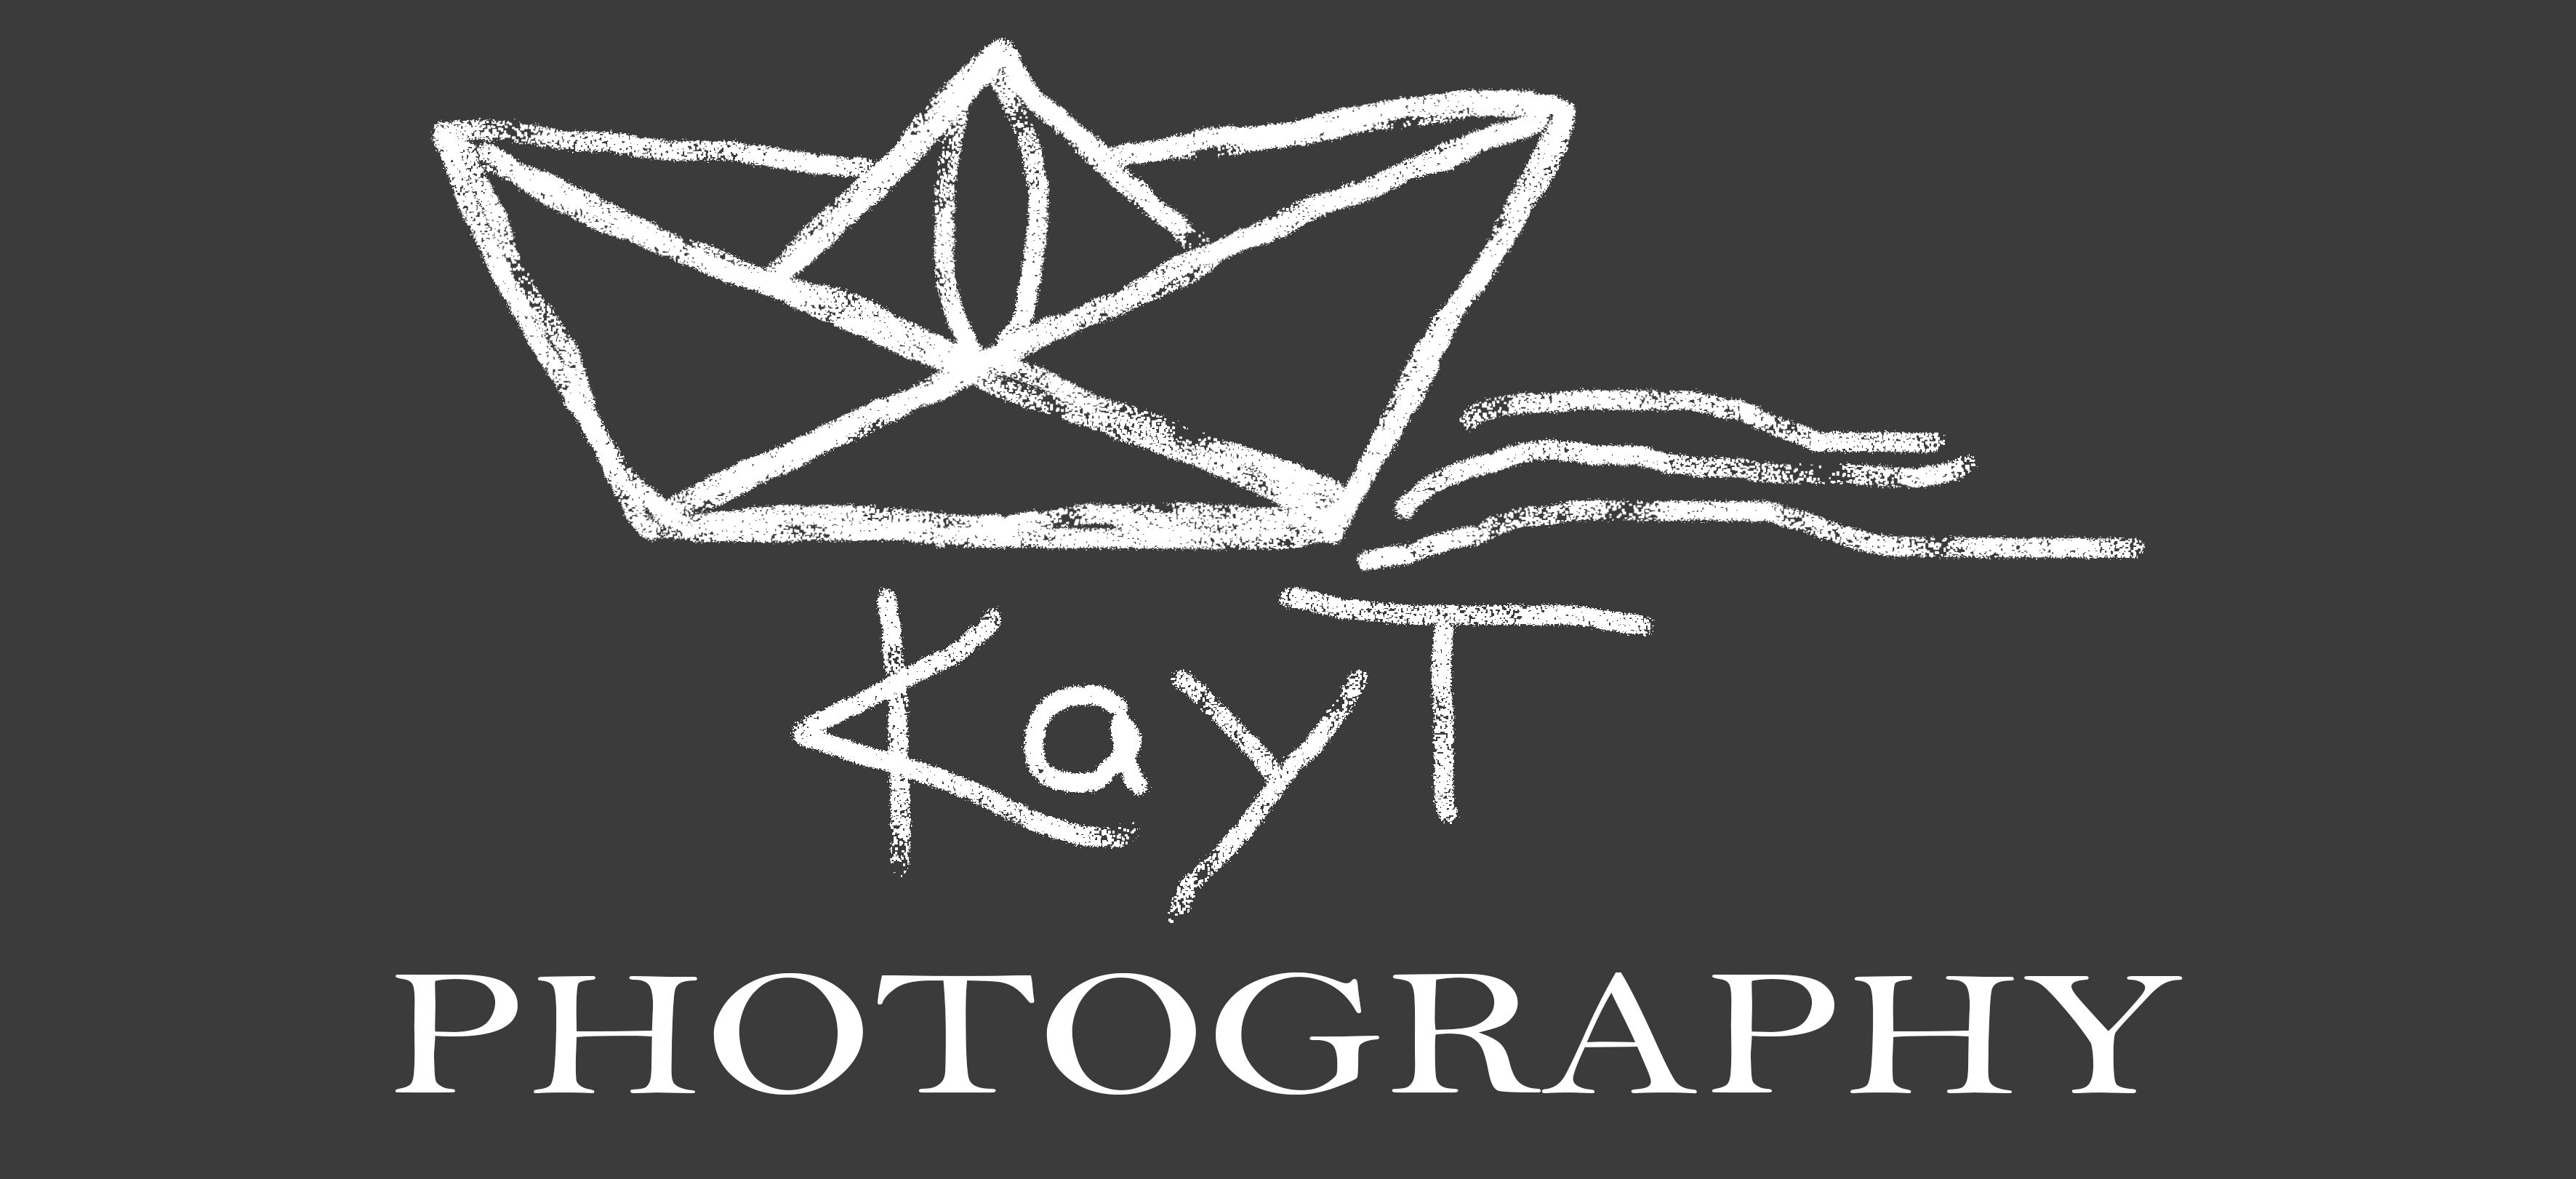 Kayt photography